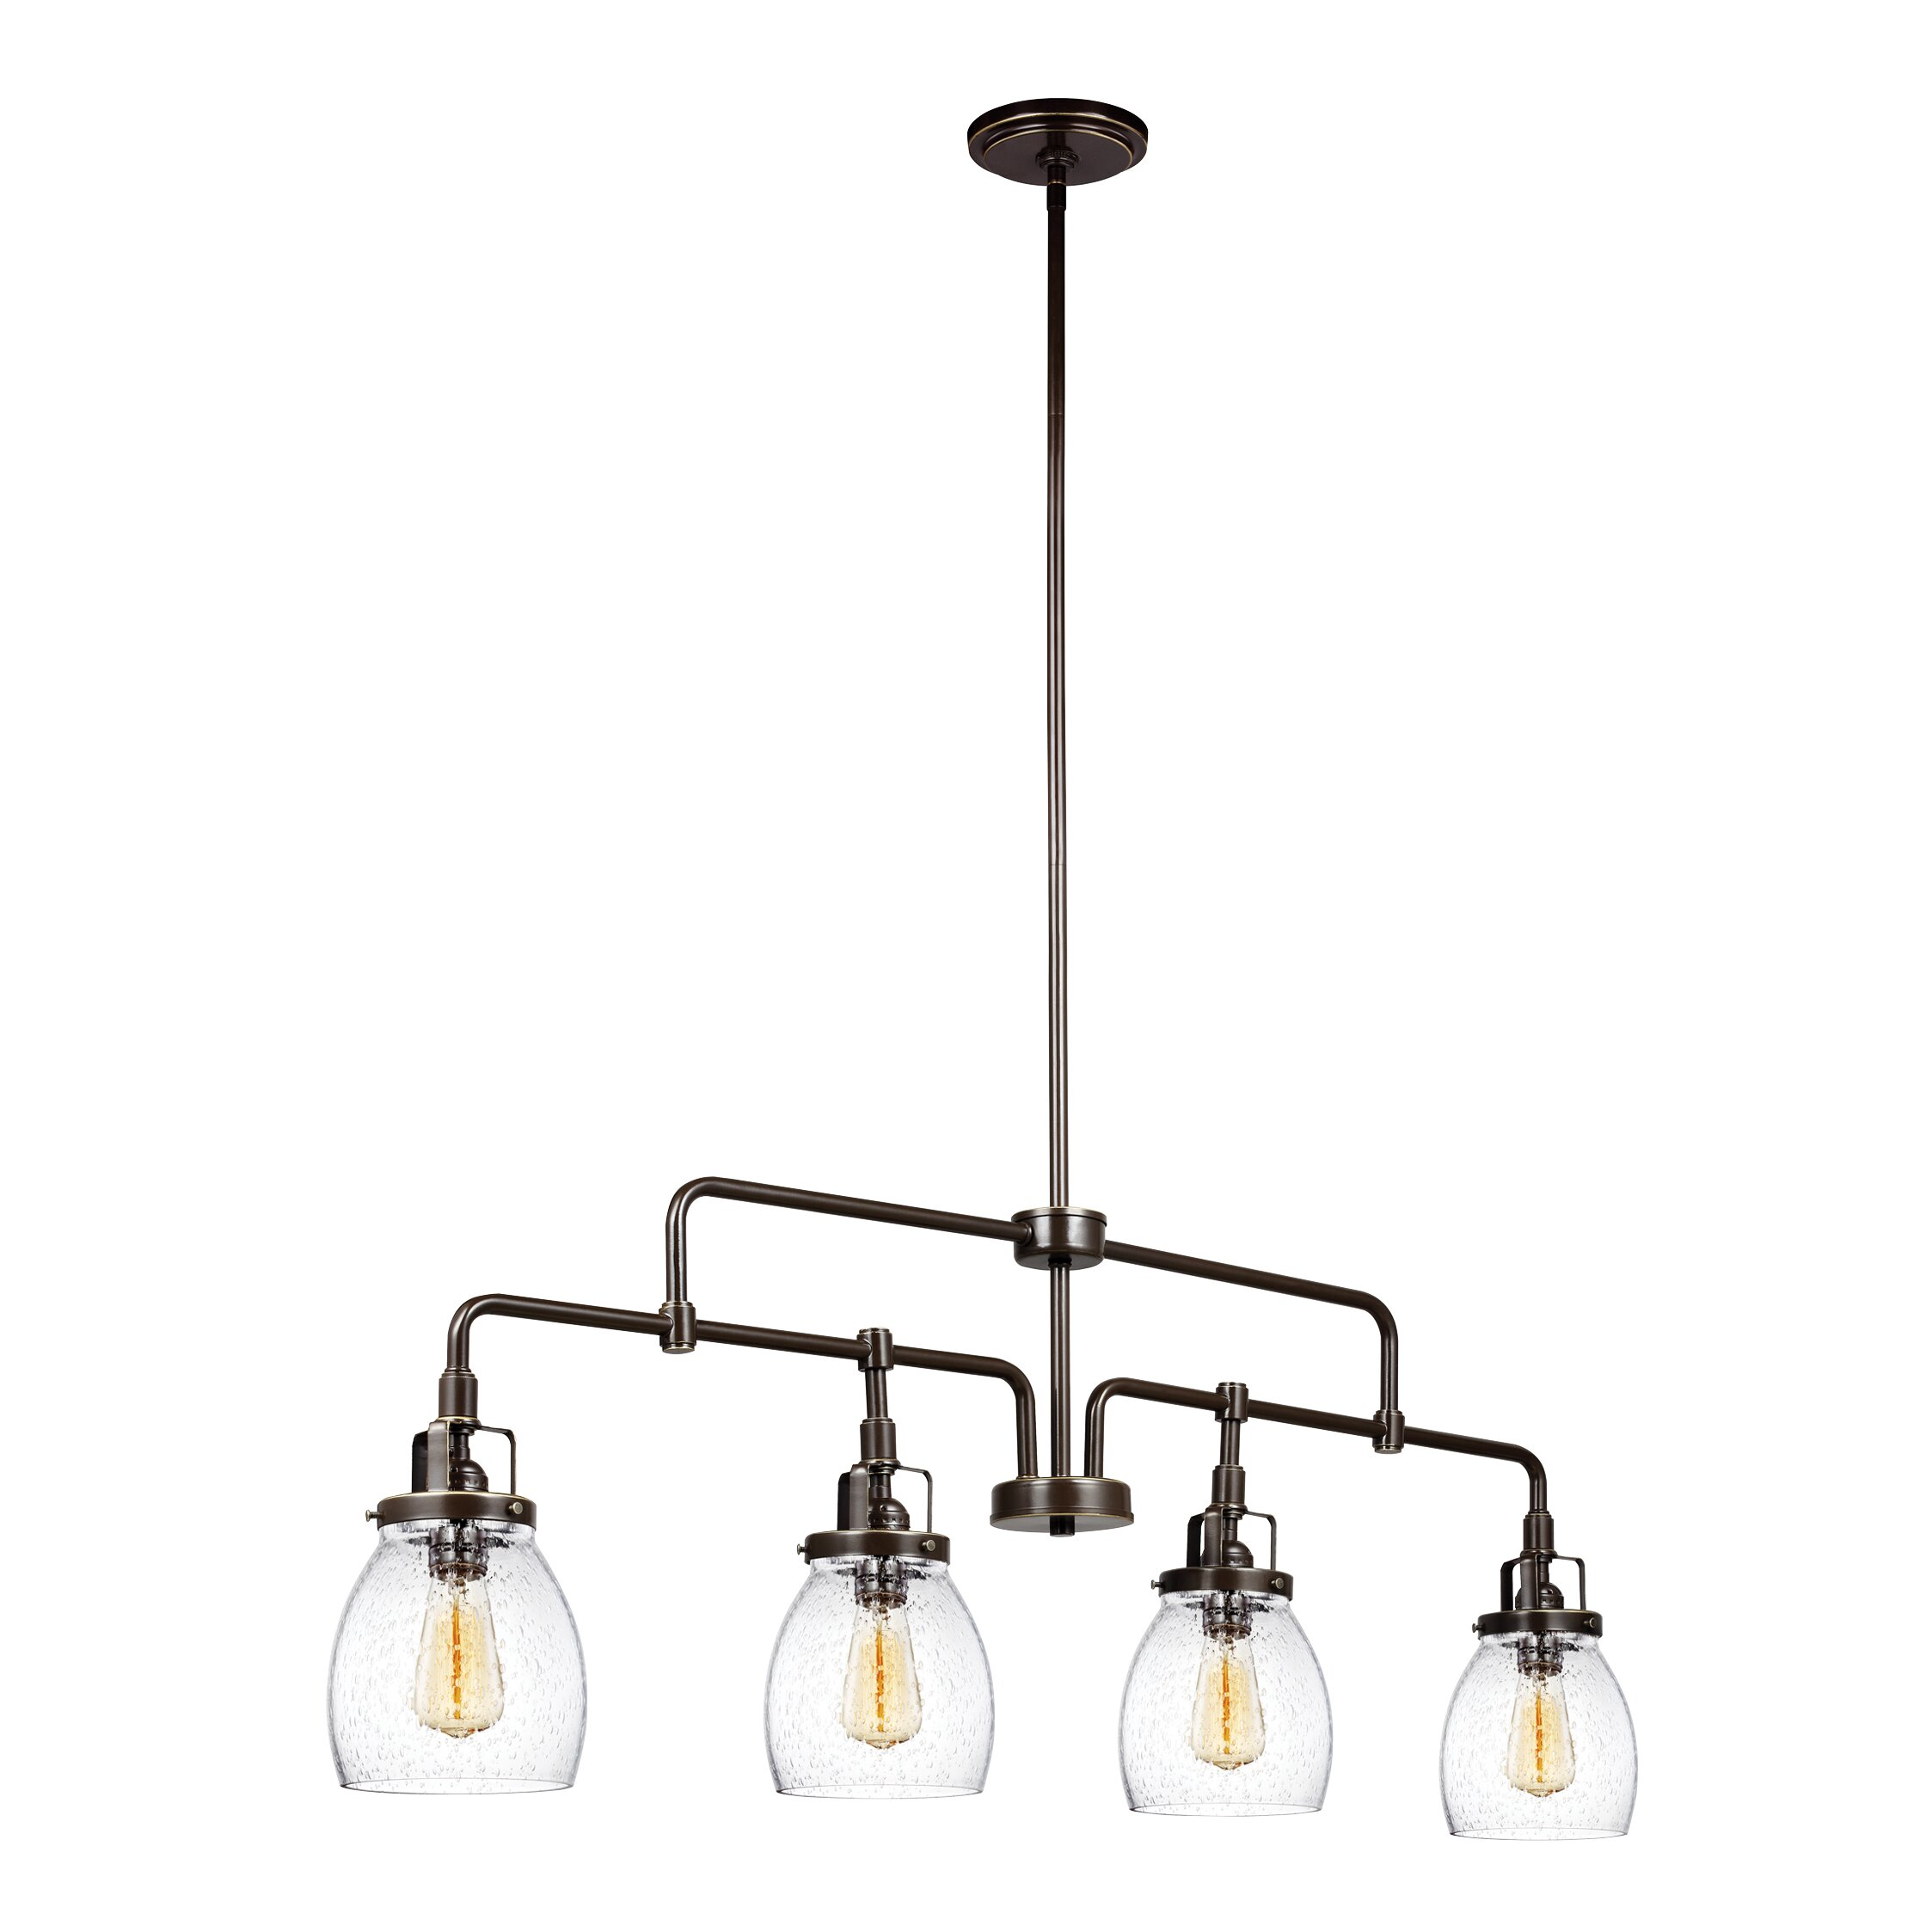 Belton 4 Light Kitchen Island Pendant